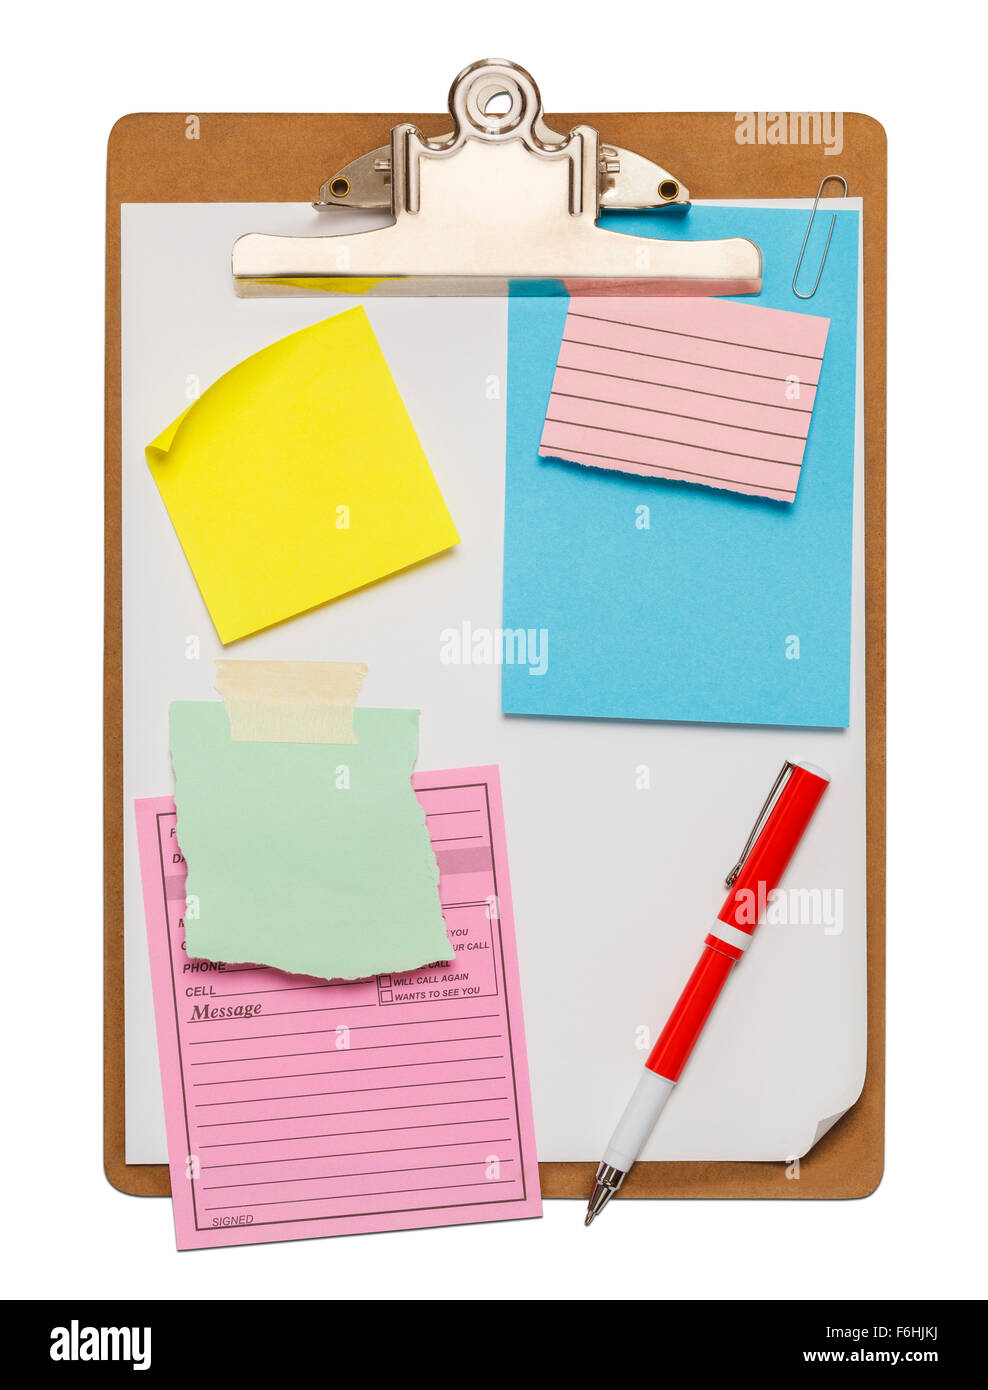 Clipboard with Scraps of Paper and Copy Space Isolated on White Background. - Stock Image